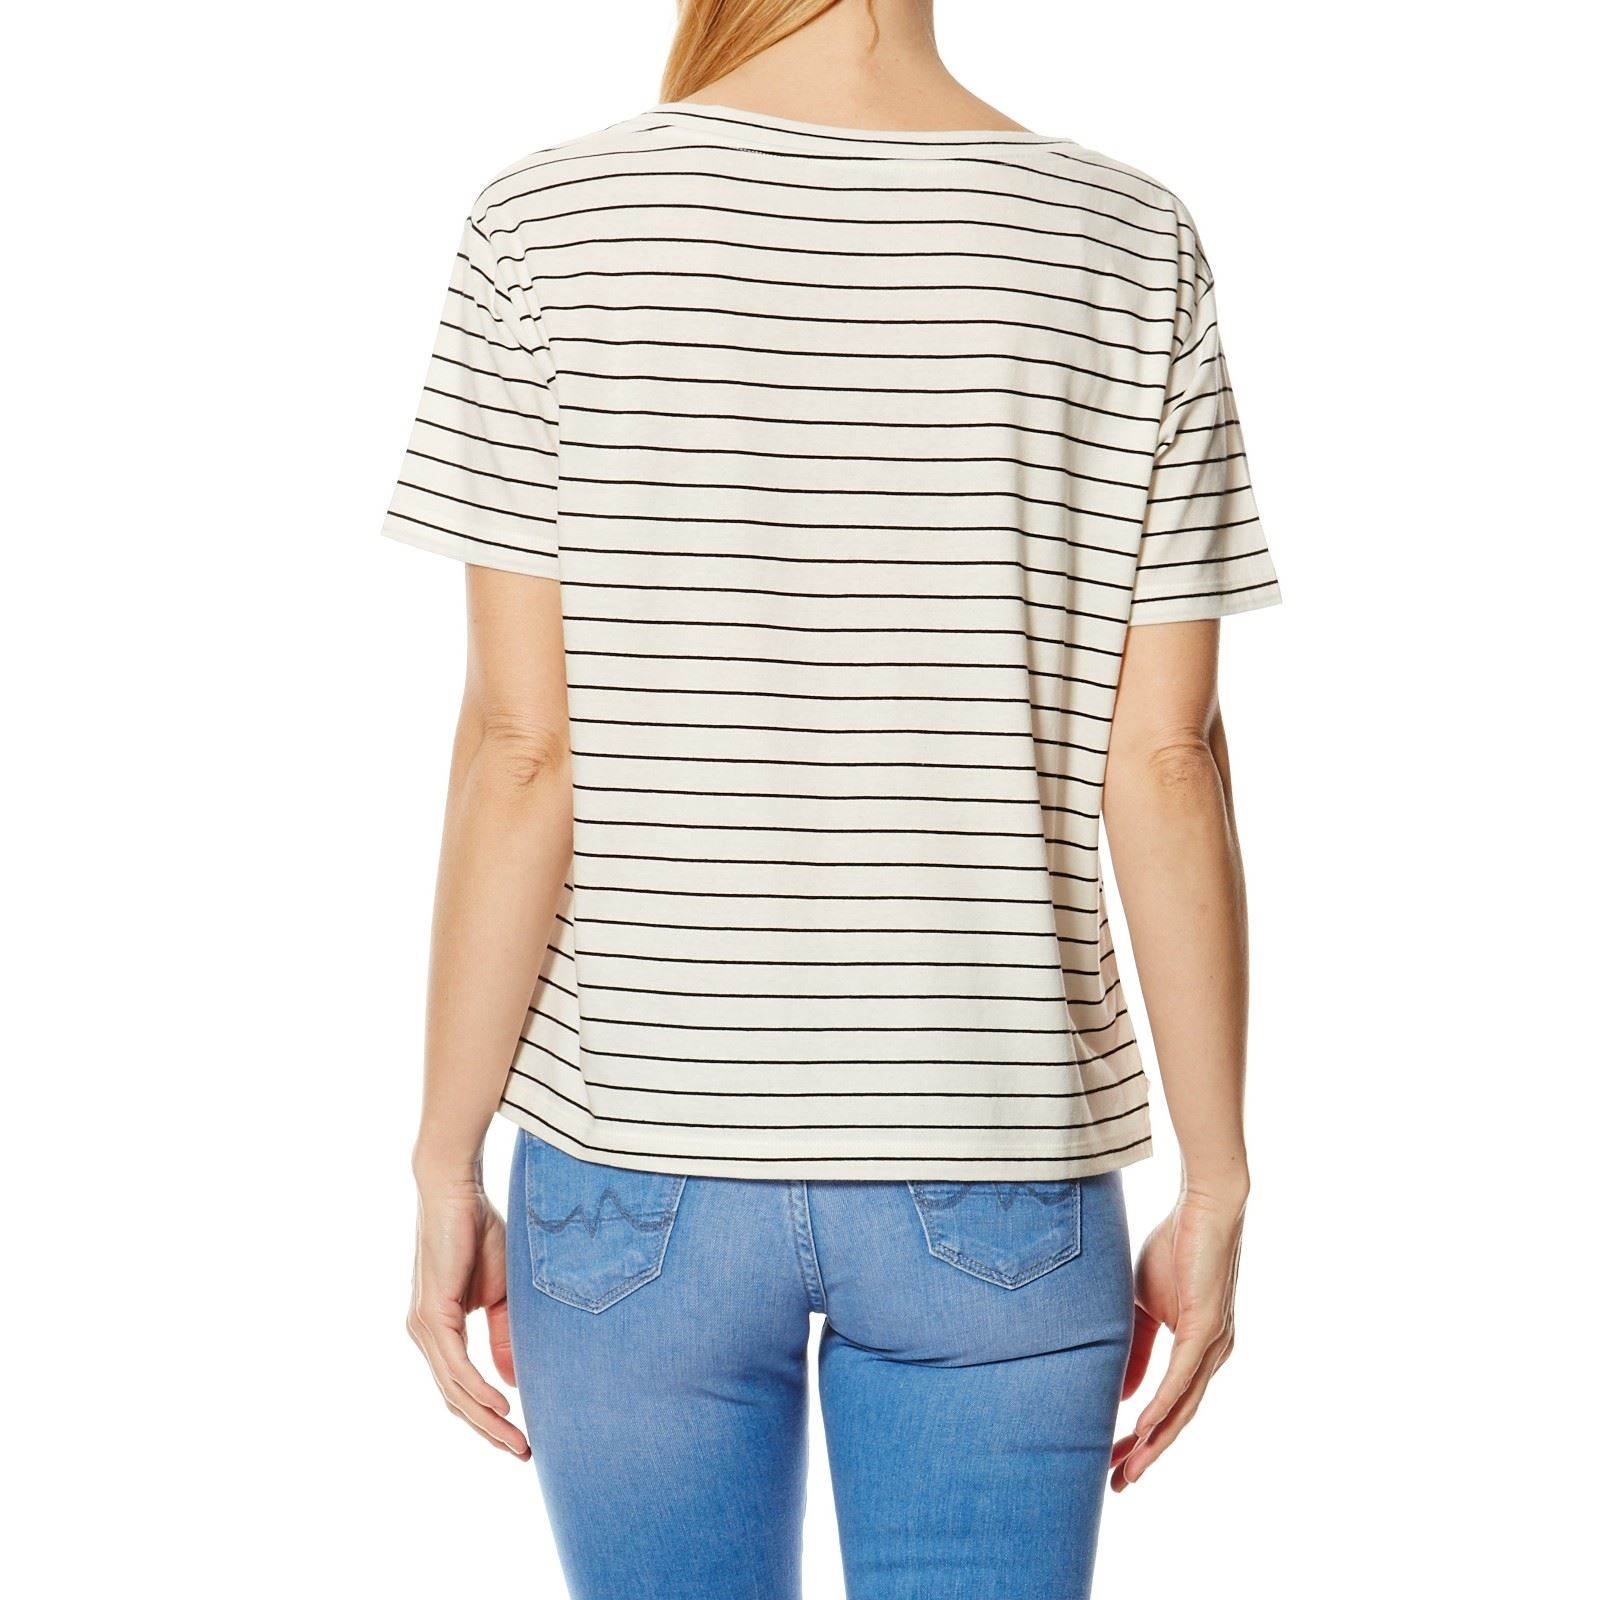 Blanc Shirt Brandalley Joe amp  T Sister Courtes Manches Paul 70RqnIw 1e5793399645